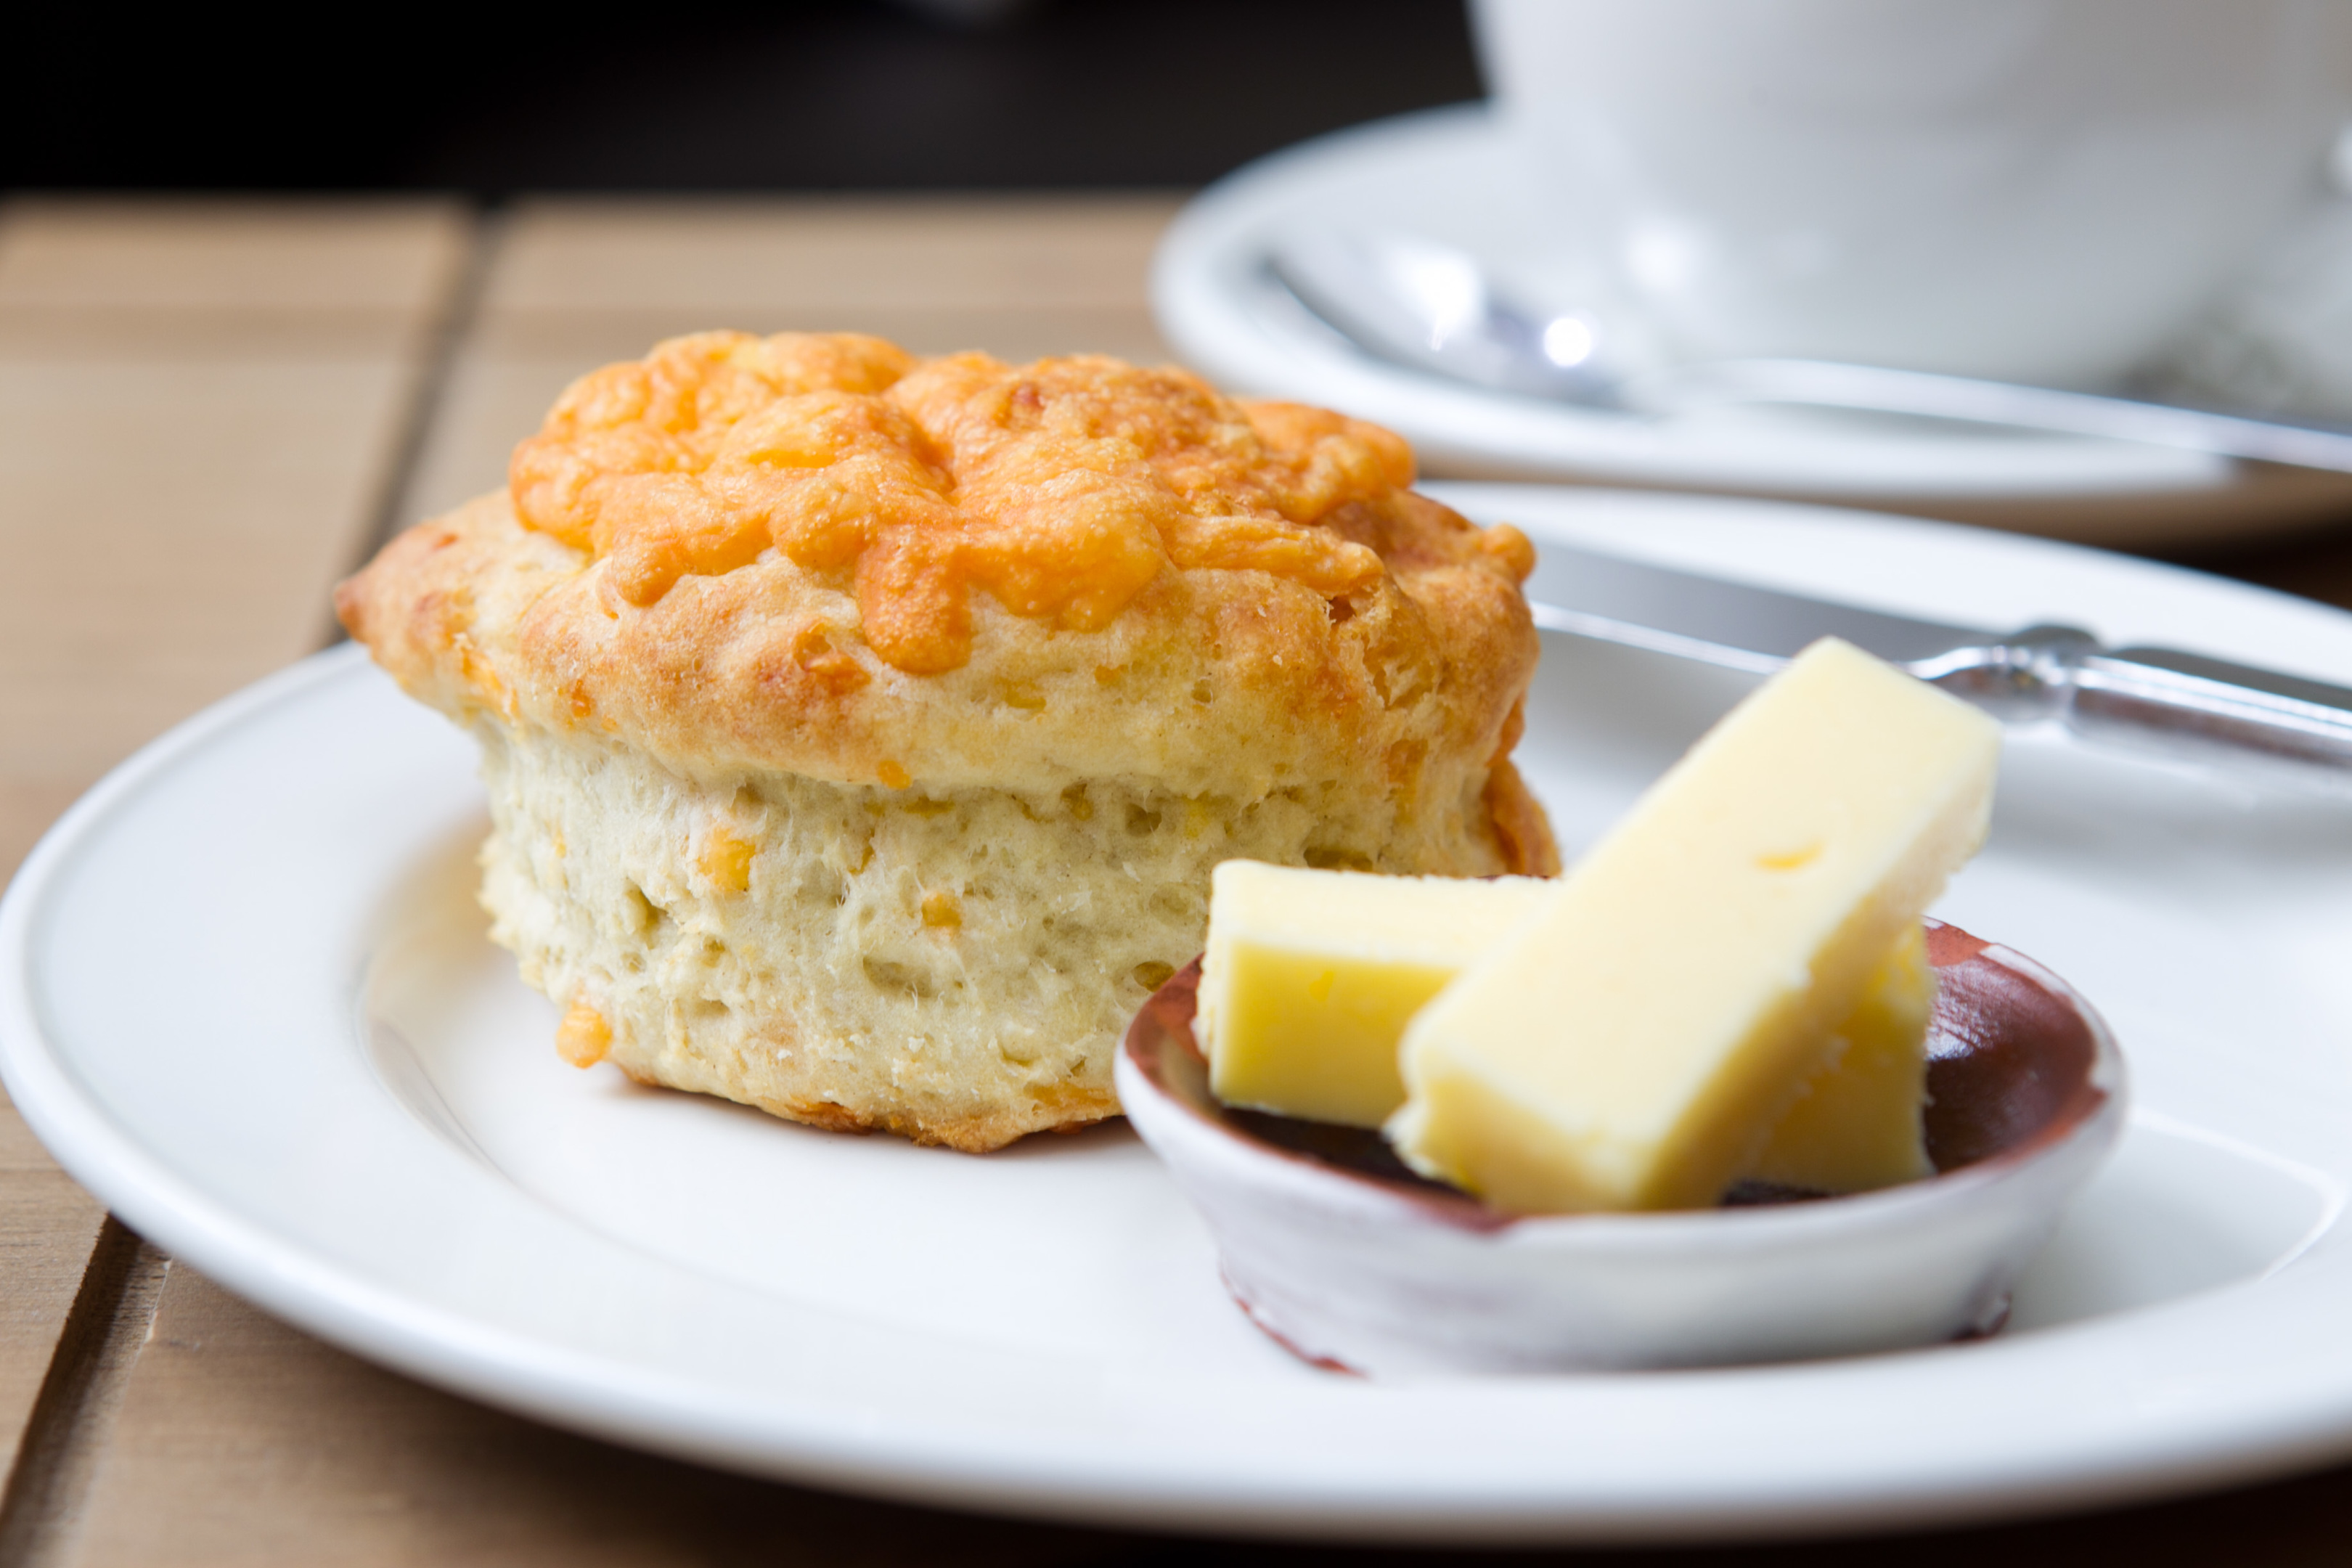 Corbenic Cafe's cheese scone (Andrew Cawley / DC Thomson)